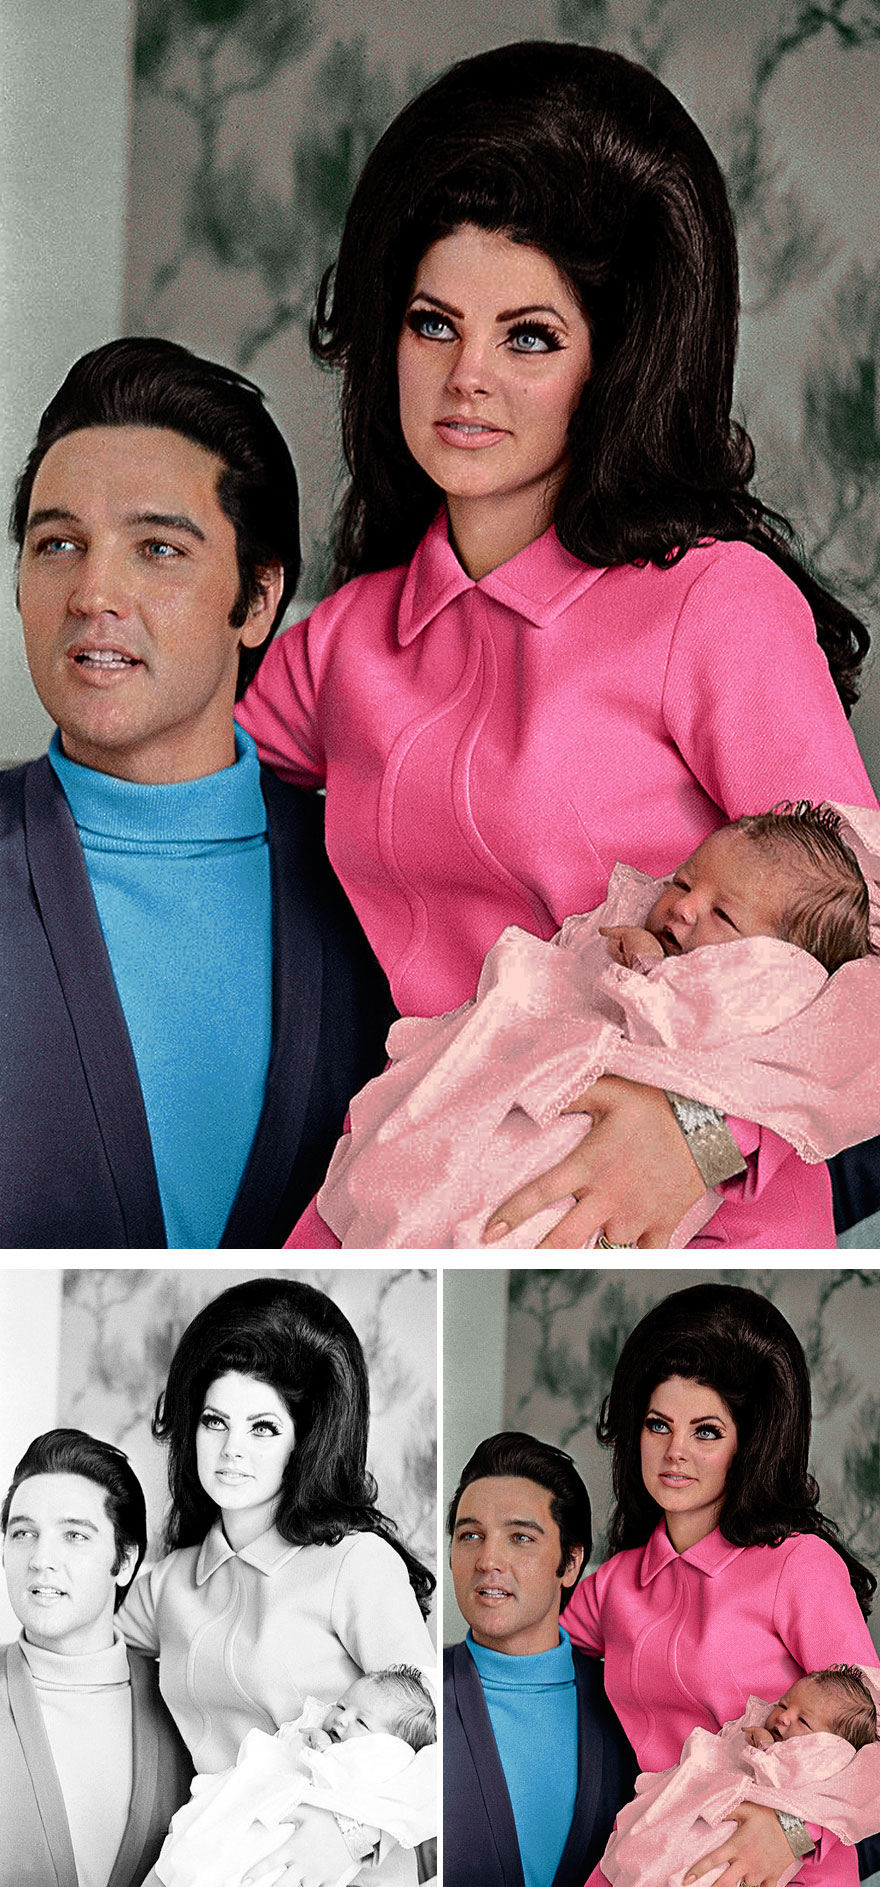 7. Elvis and Priscilla Presley with baby Lisa Marie